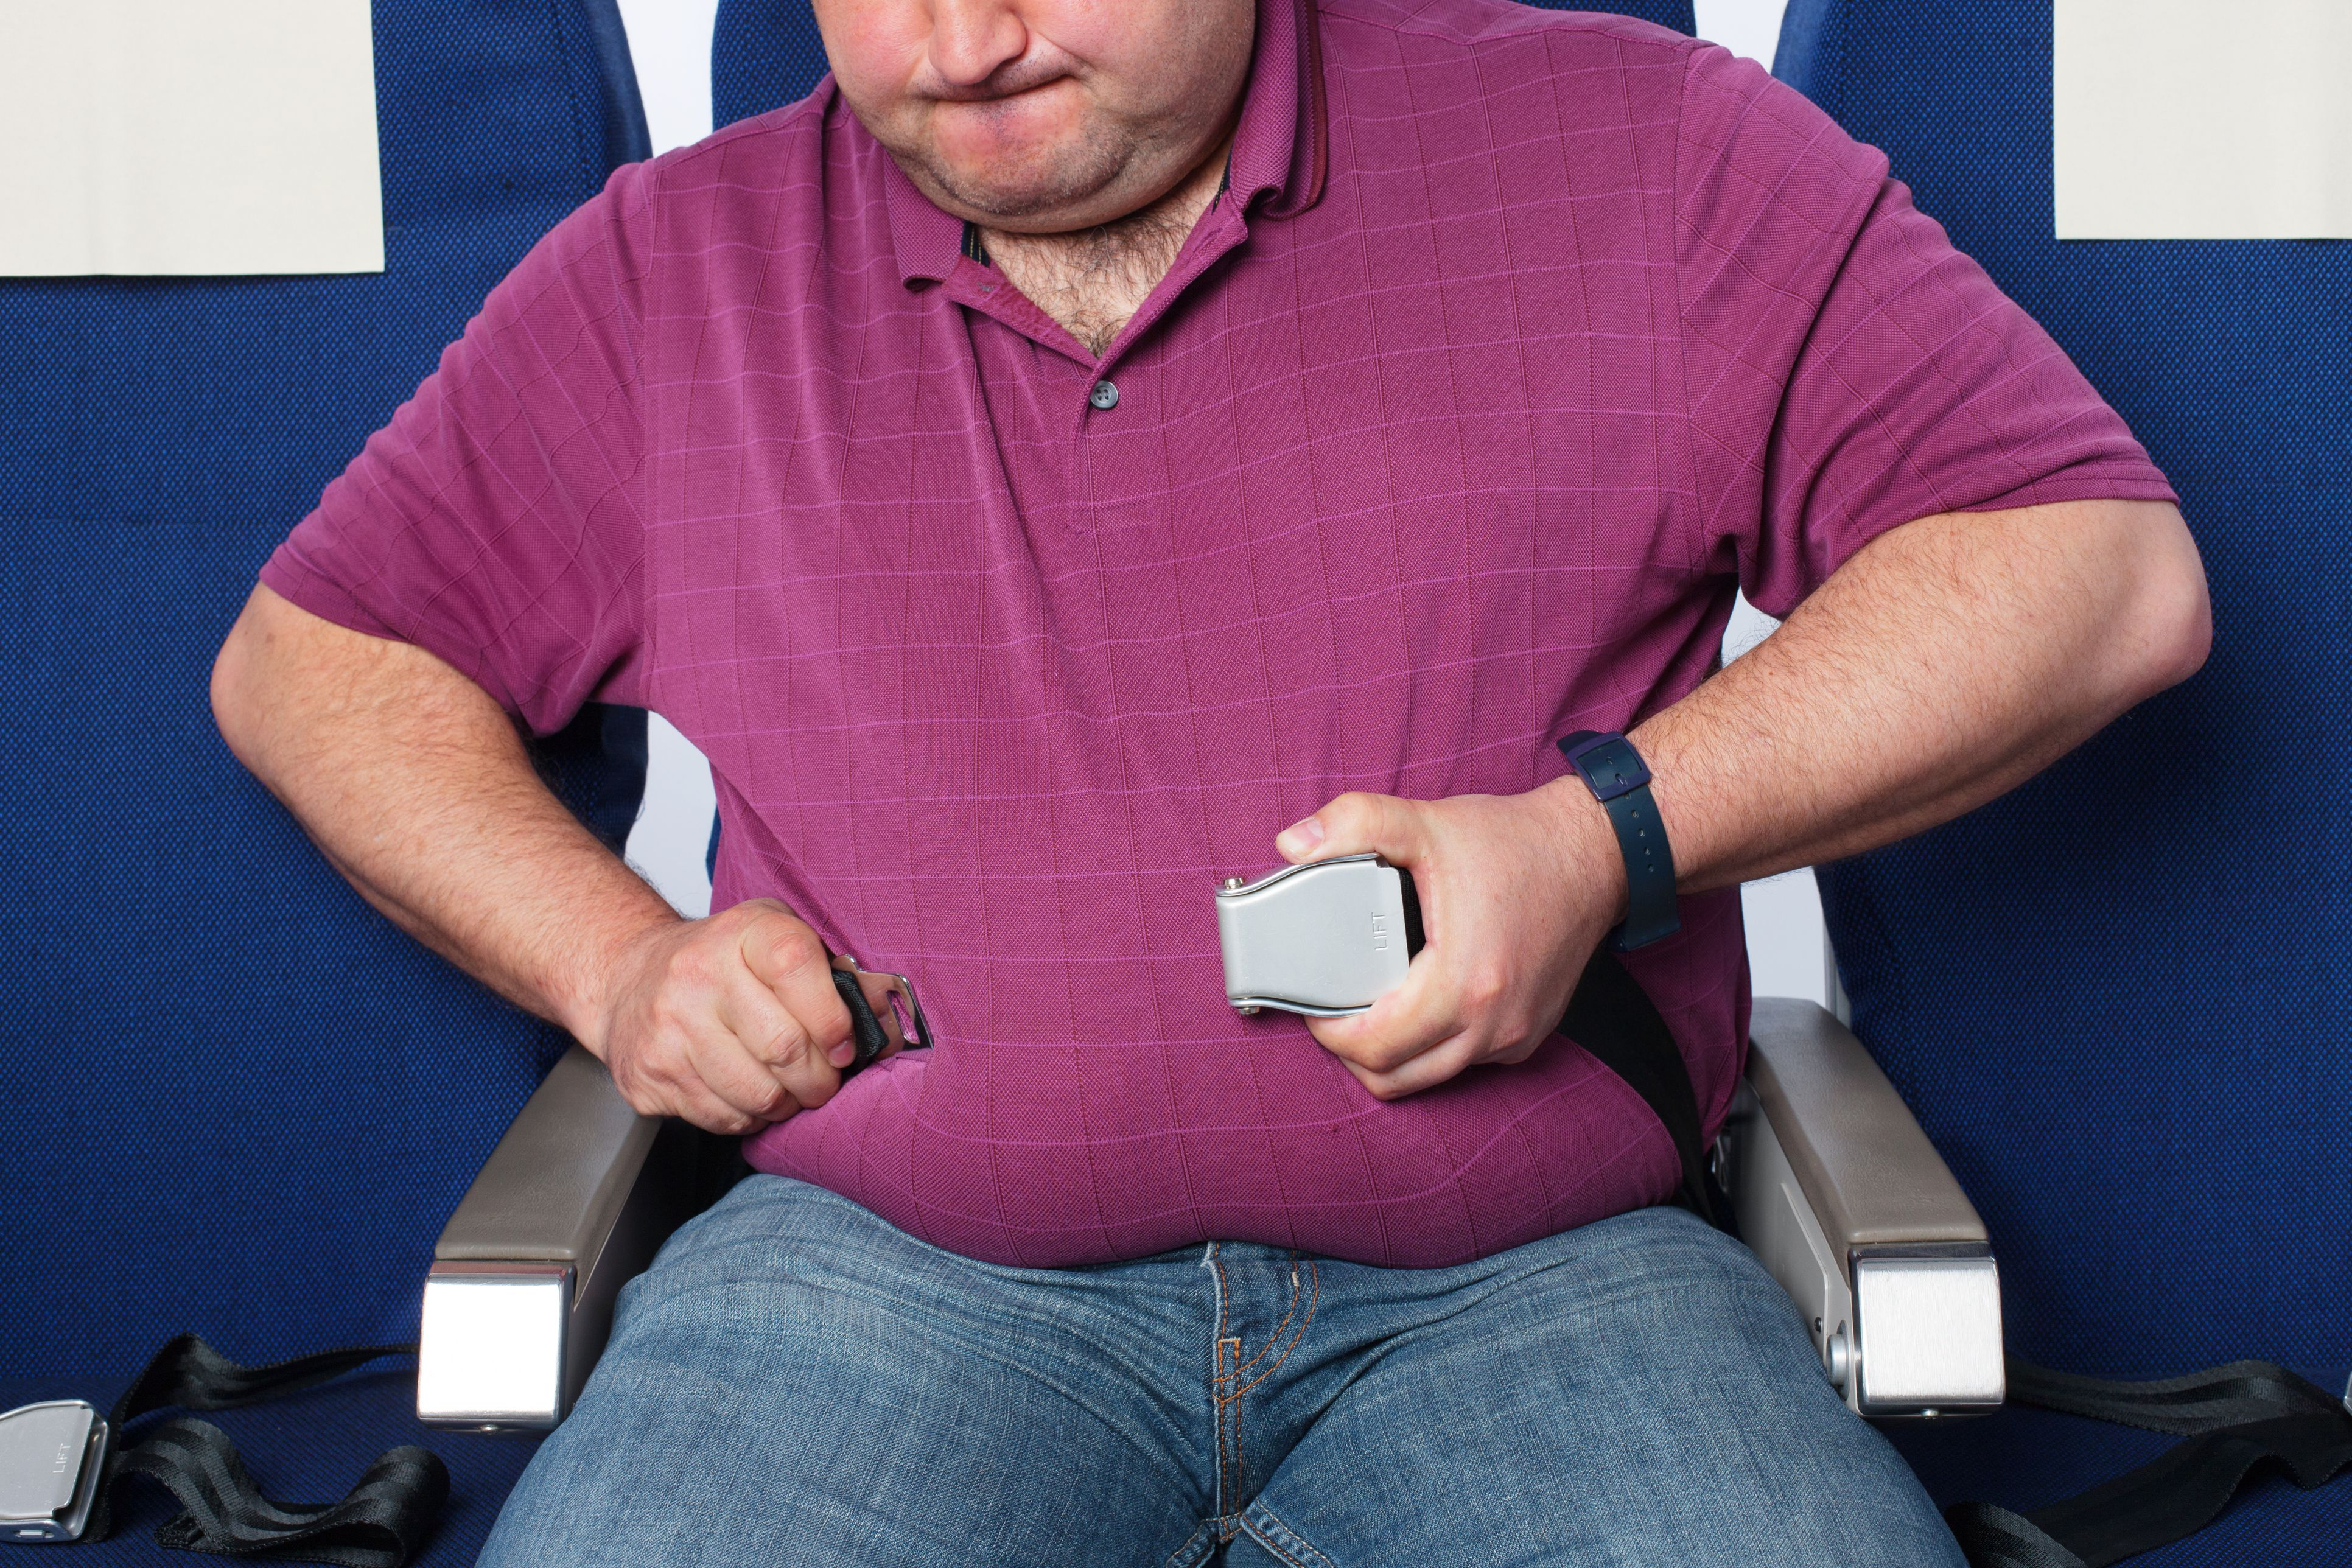 North American Airlines Weigh In On Rules For Overweight